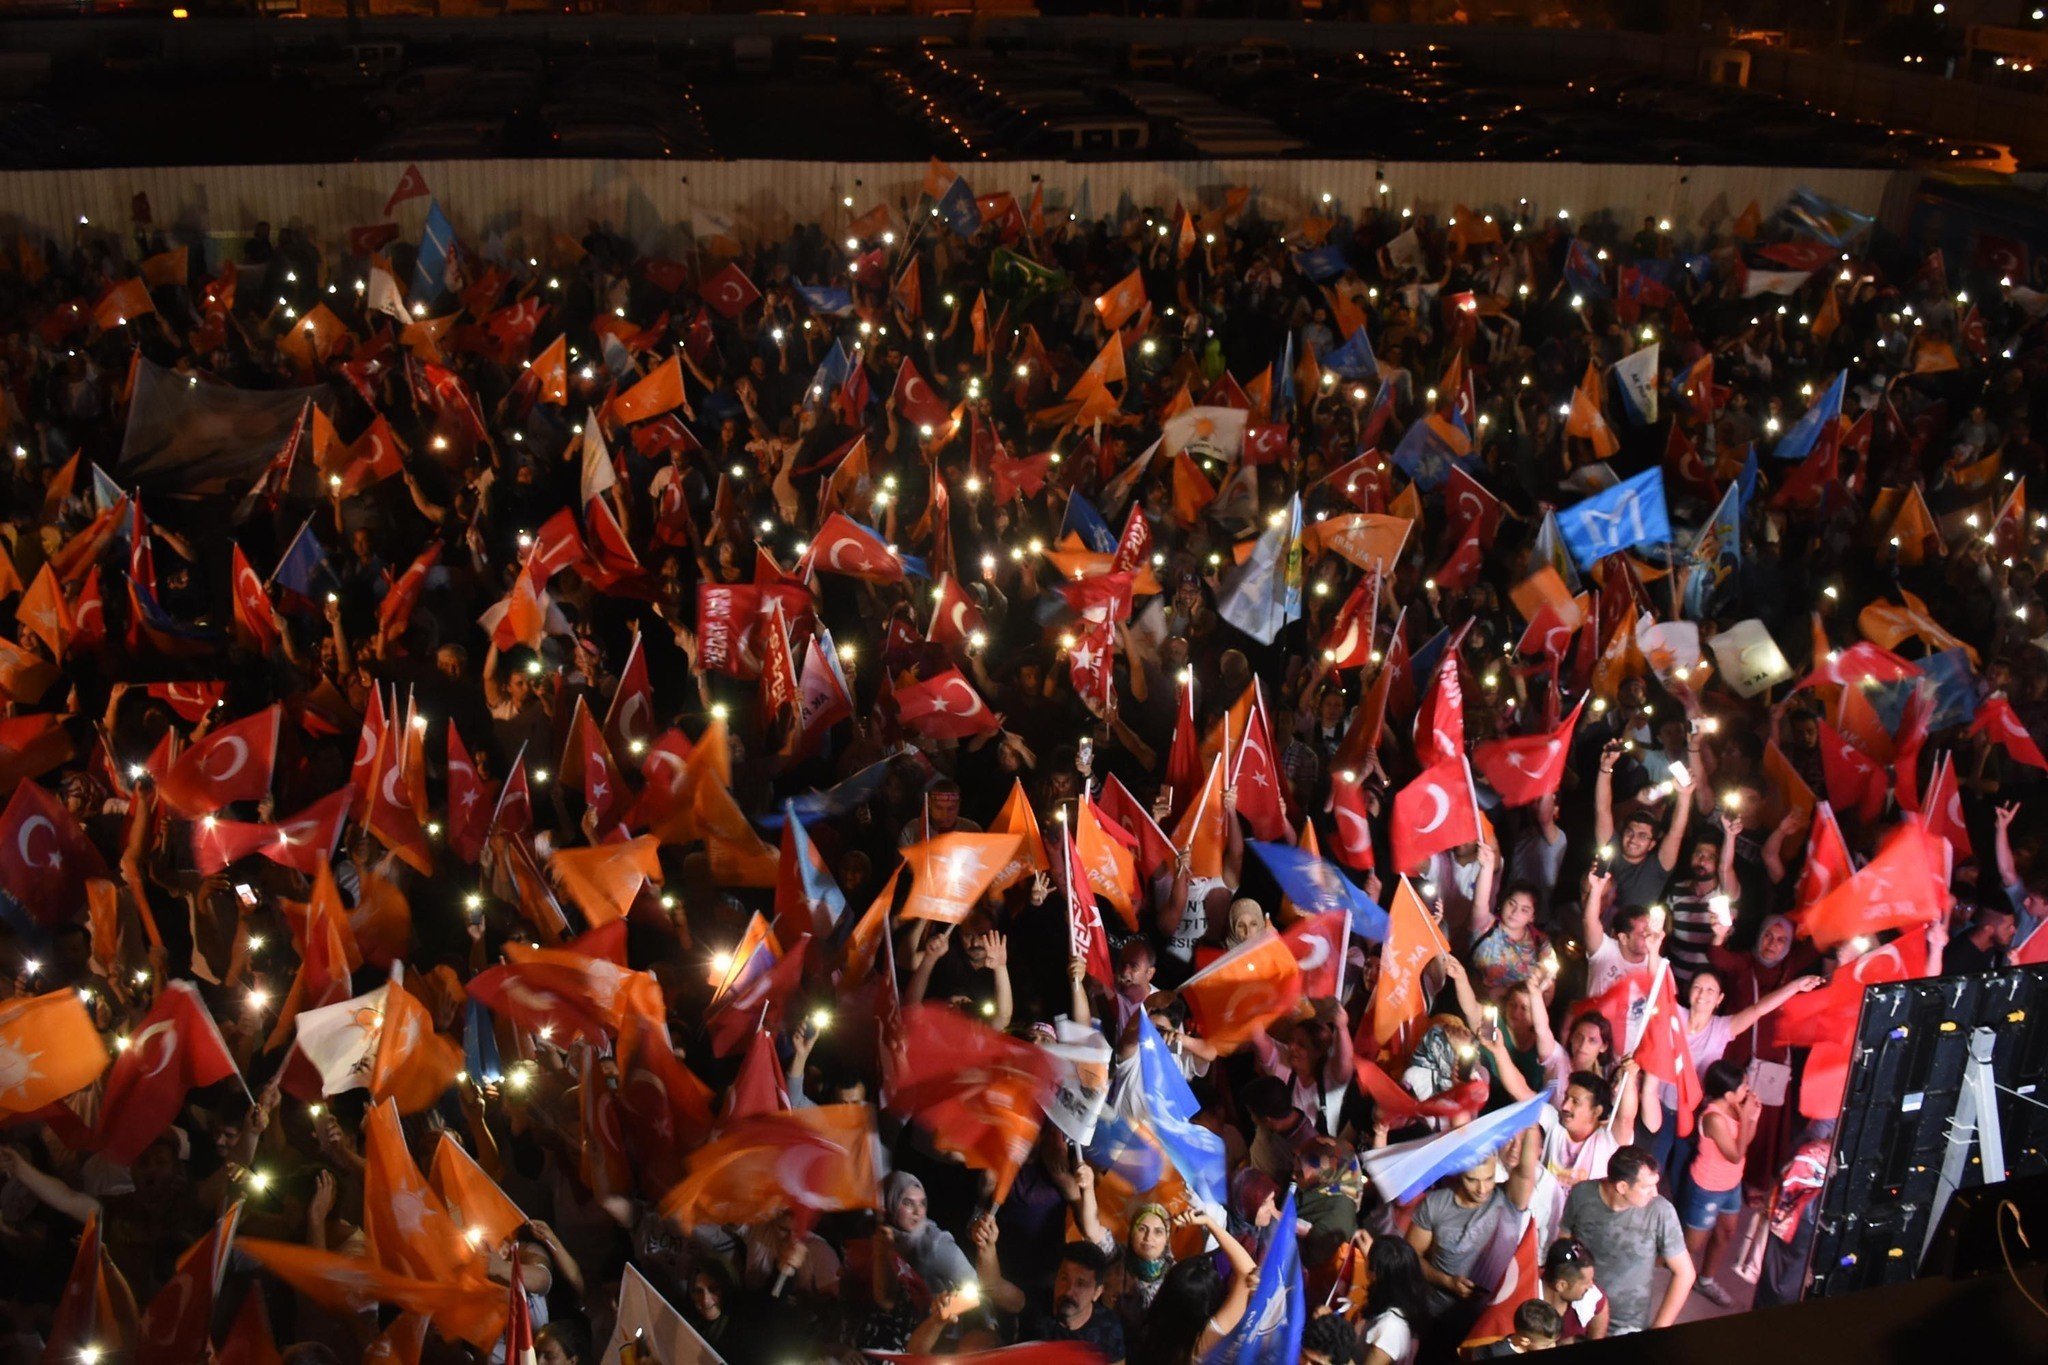 AK Party supporters wave flags in front of the partyu2019s headquarters in u0130zmir following the presidential and parliamentary elections, June 24.